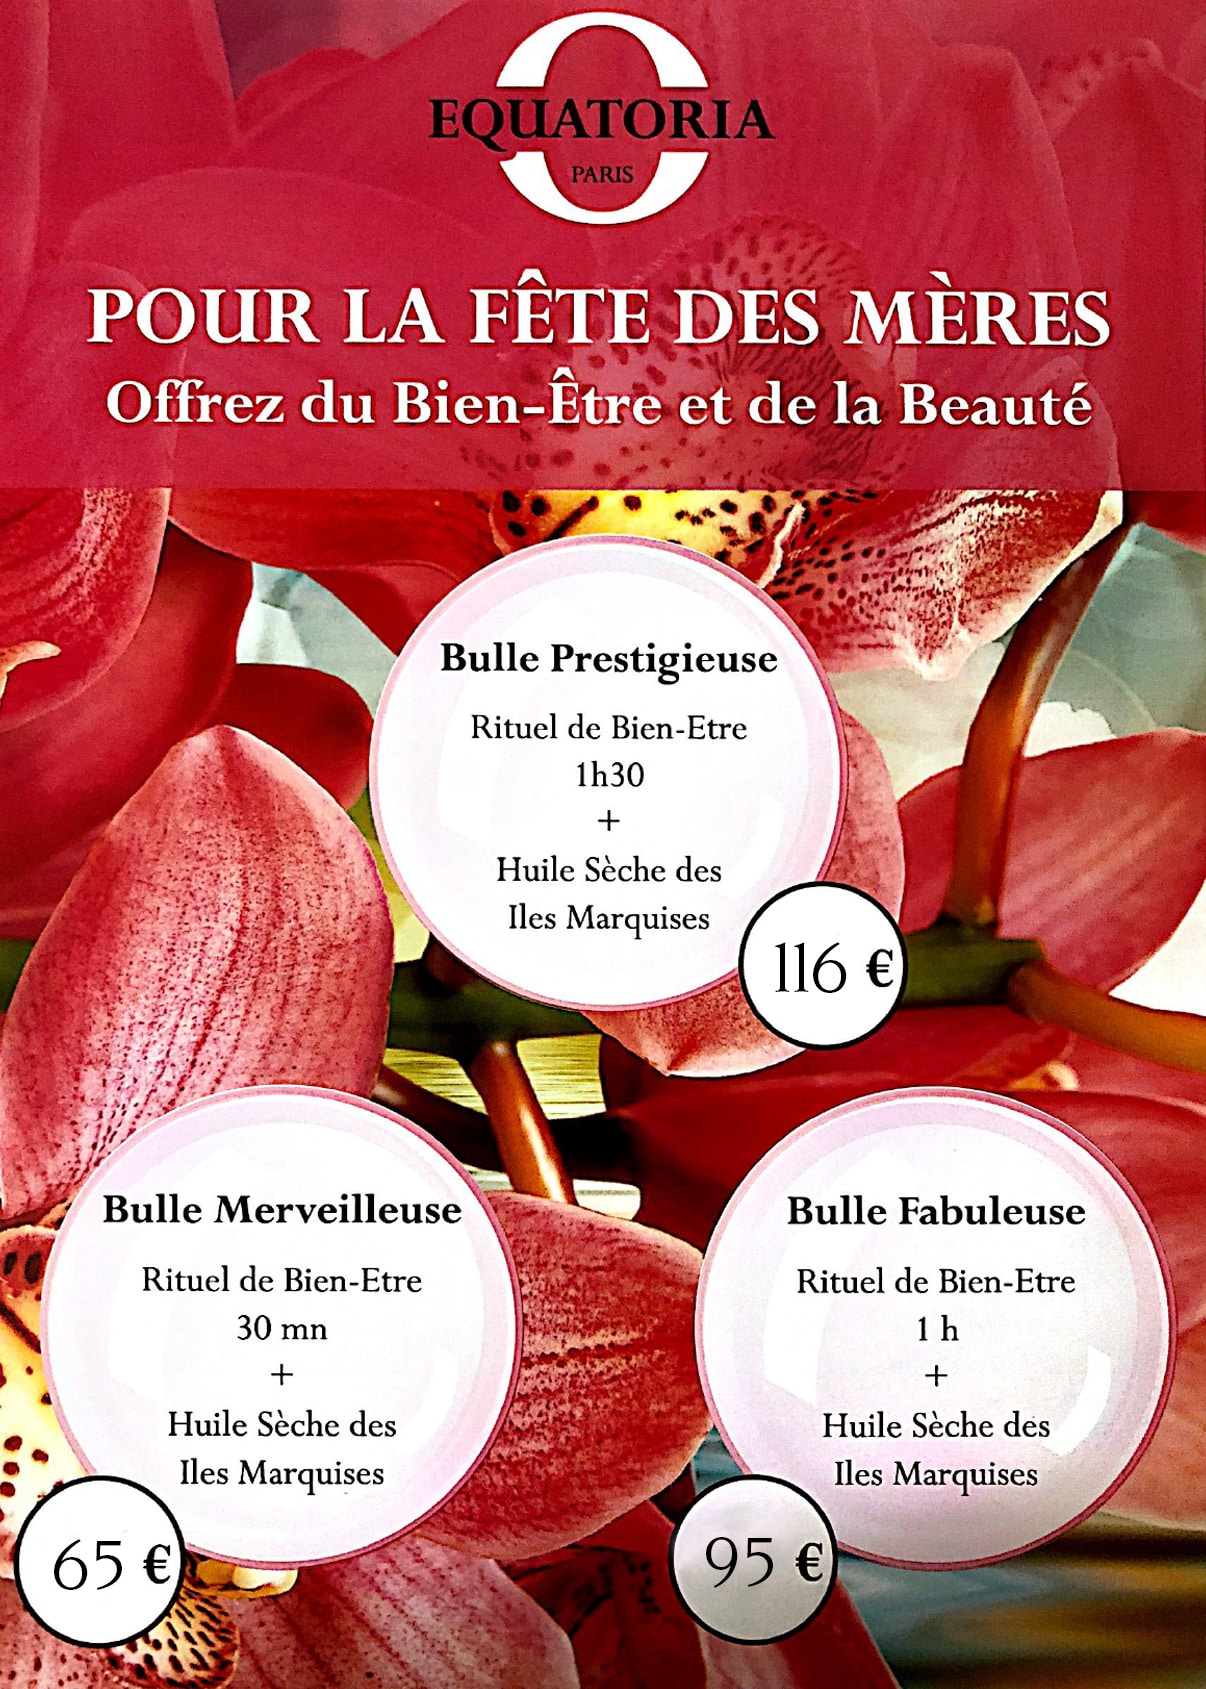 Salon De Massage 94 Institut Origin 39elle Institut De Beauté 94 Origin 39elle